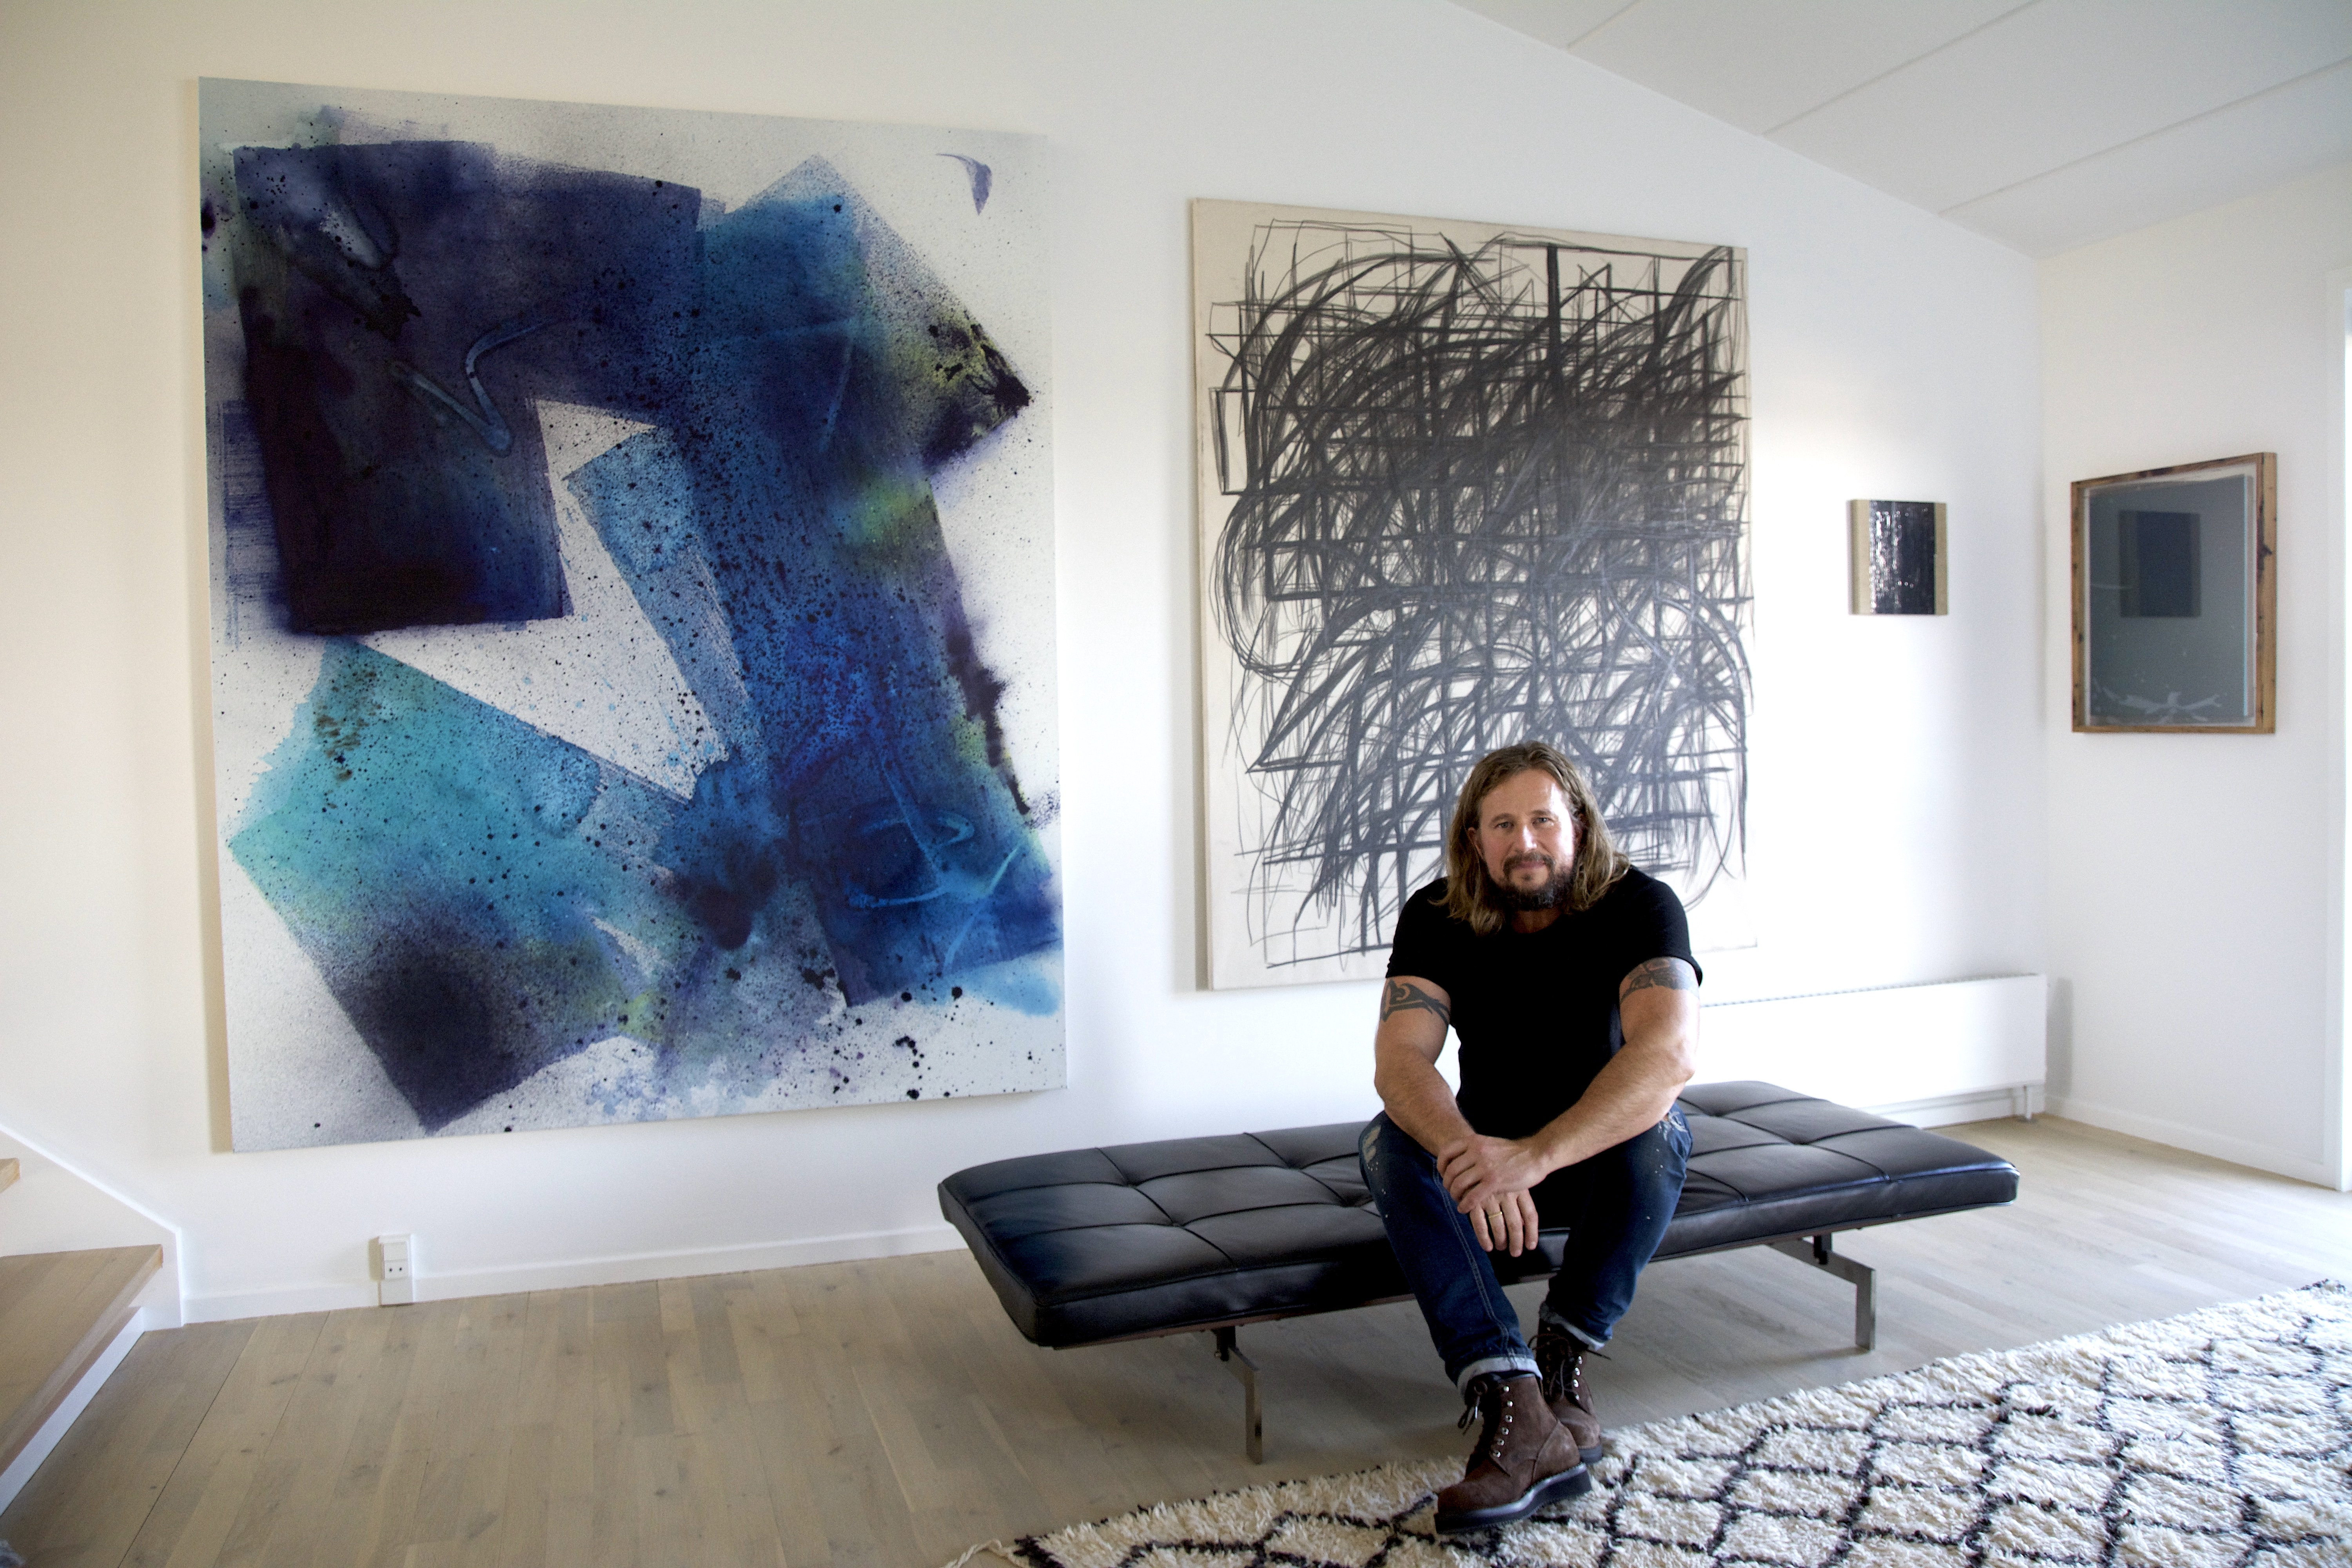 All you want to know about Lars Holst's art contemporary collection – Read on artland